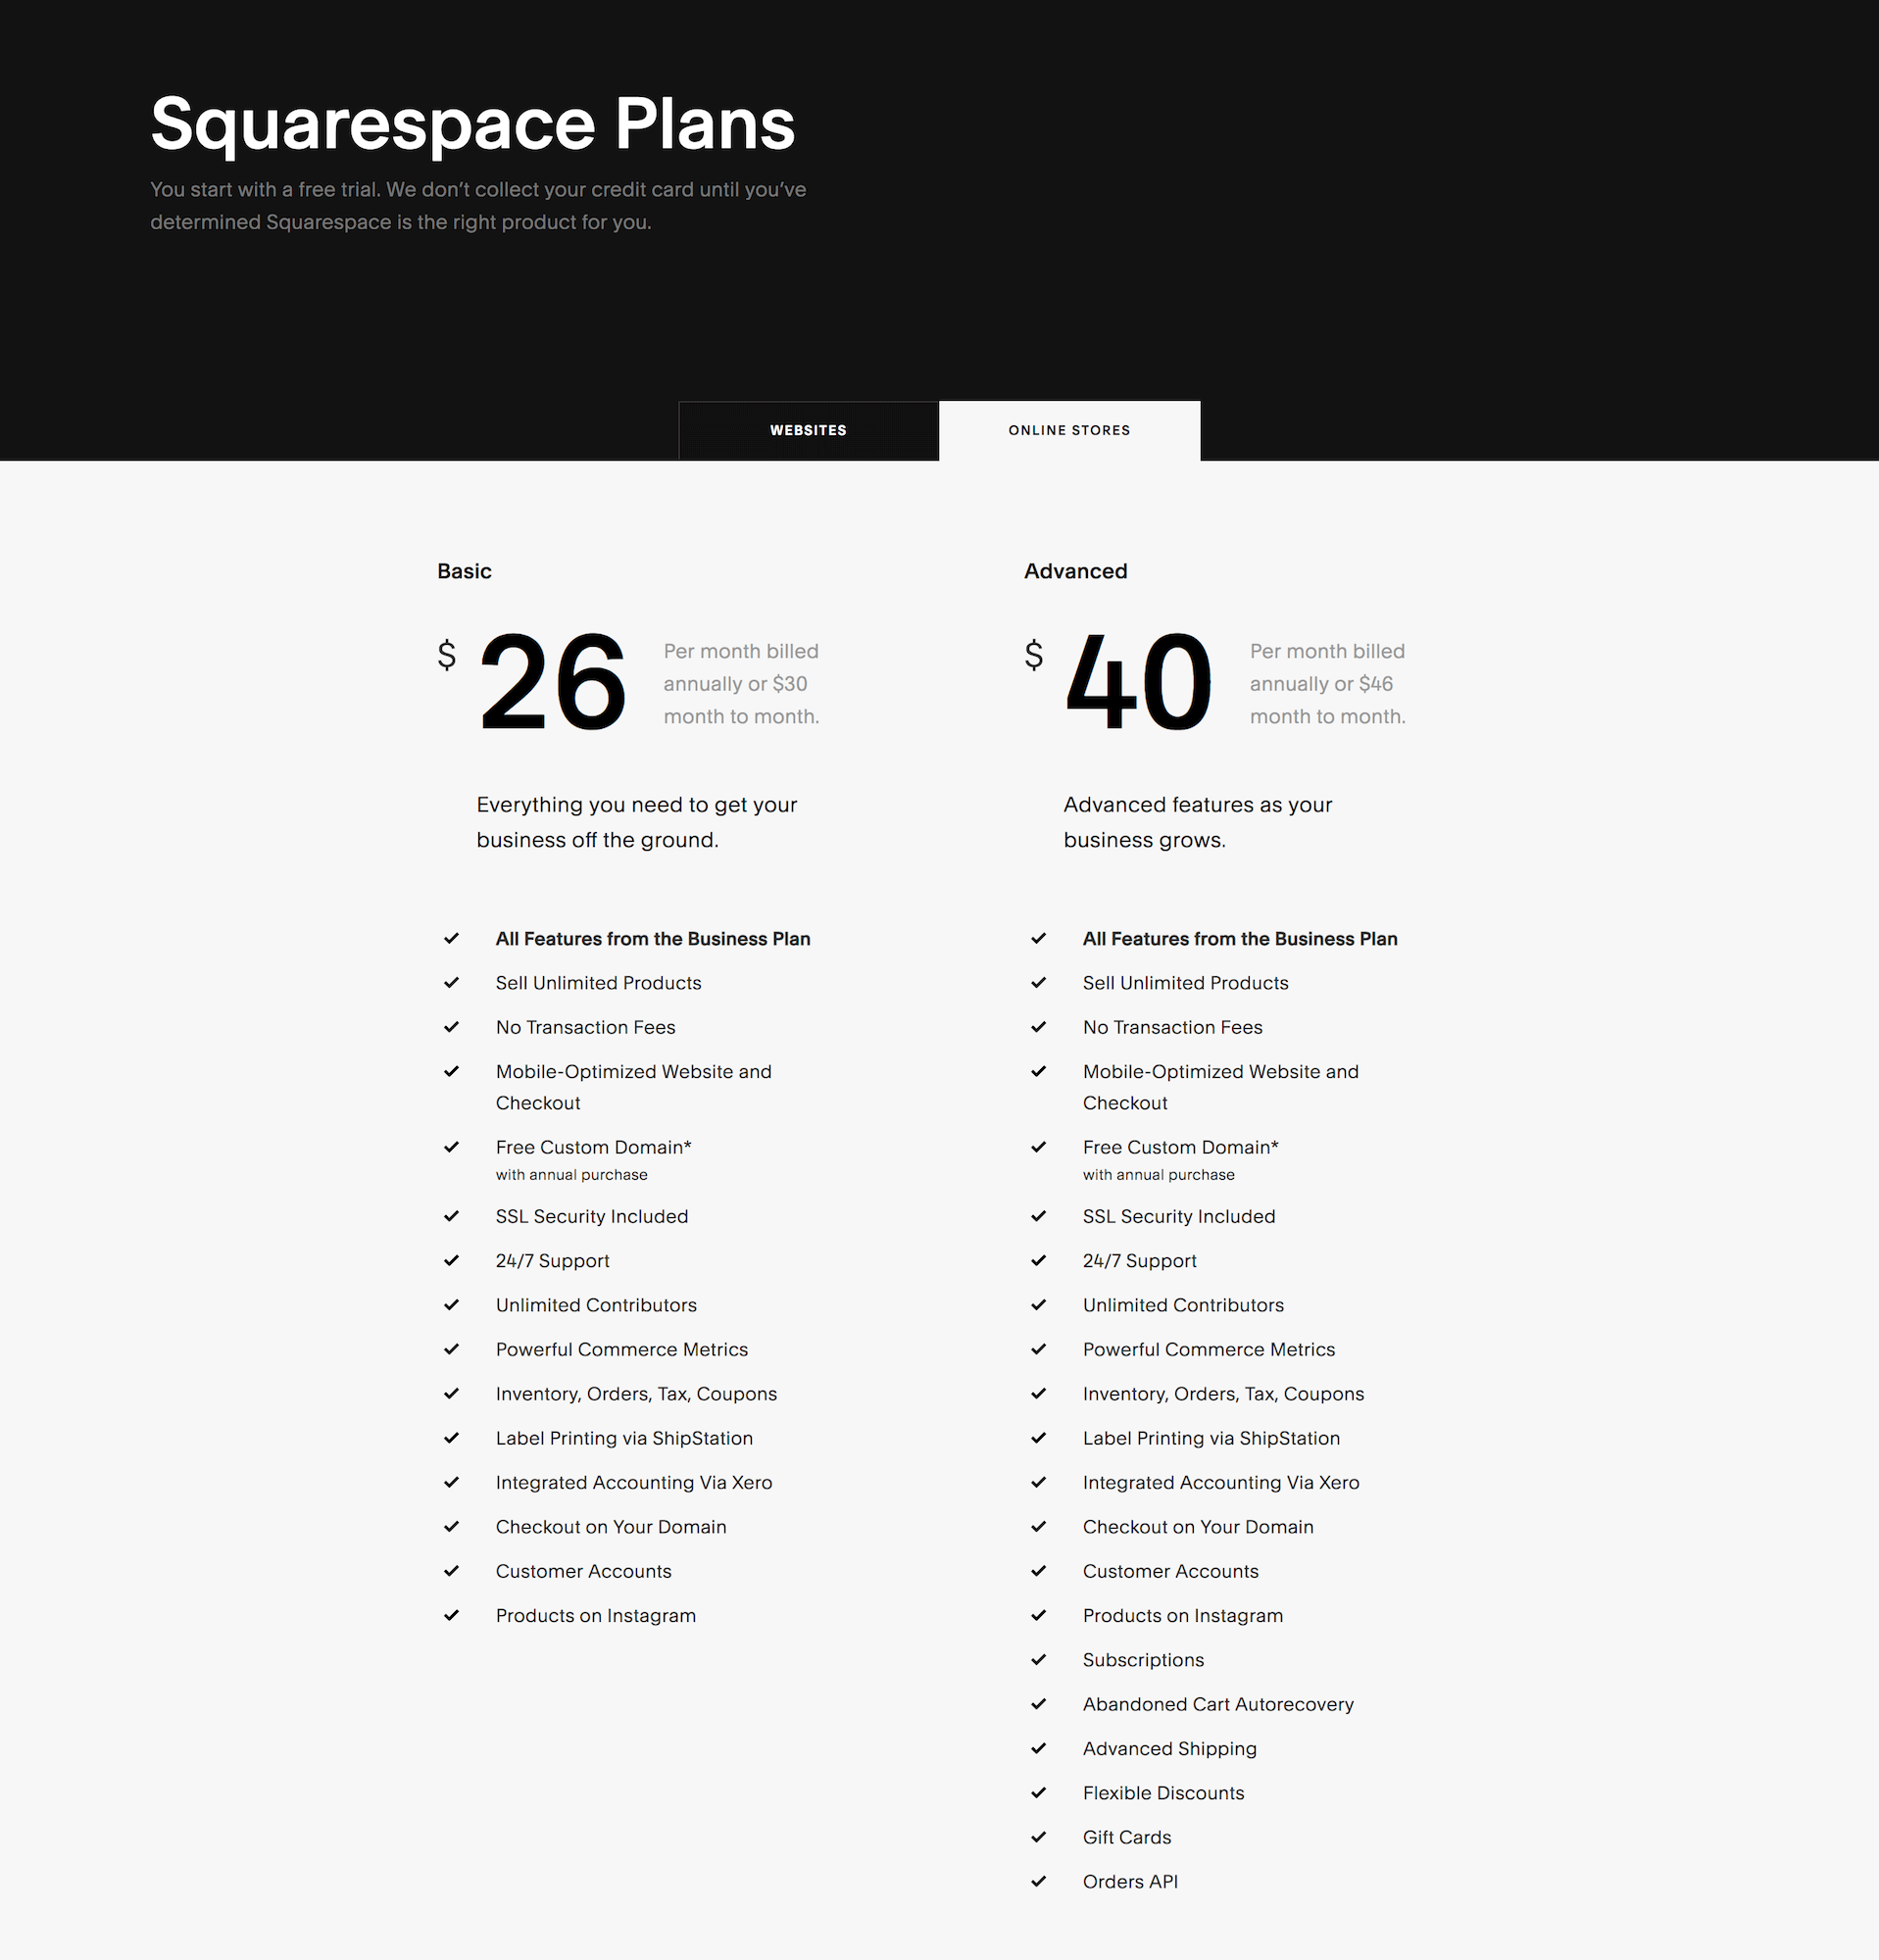 Squarespace-ecommerce-pricing-plans.png